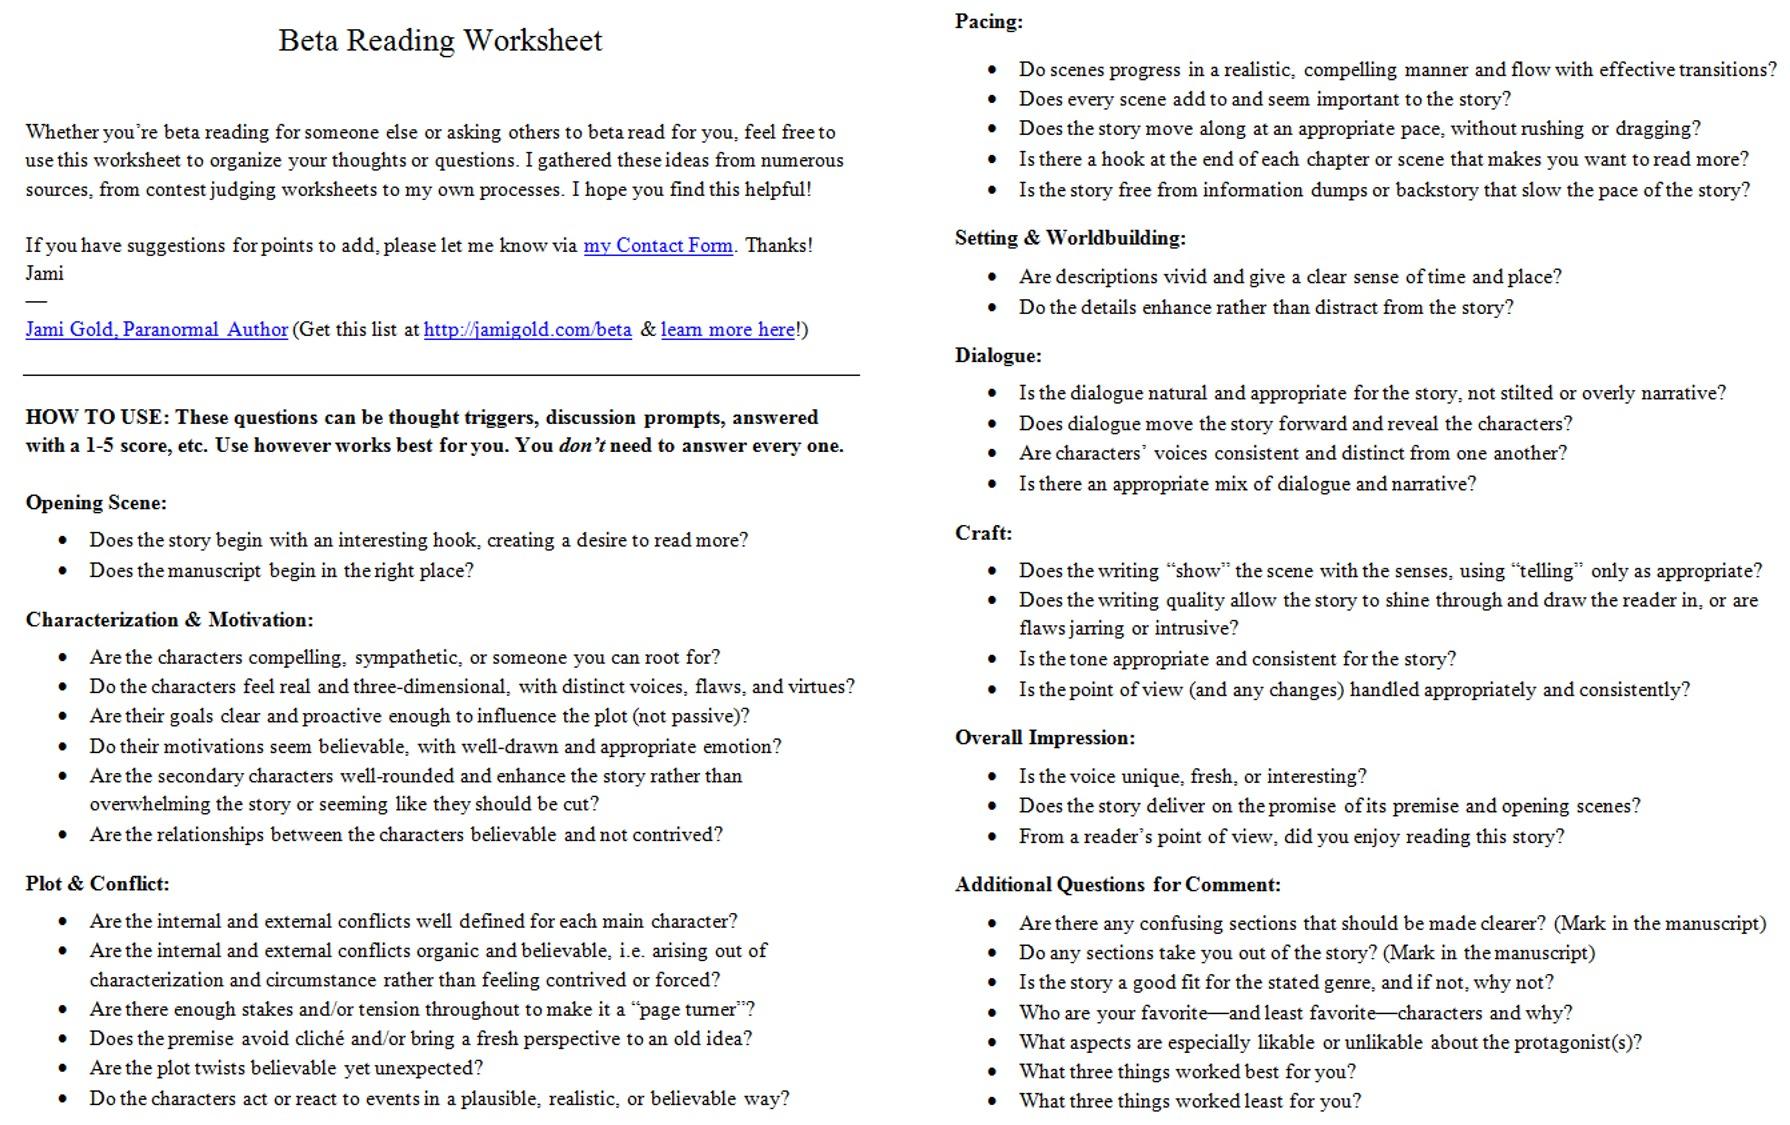 Aldiablosus  Fascinating Worksheets For Writers  Jami Gold Paranormal Author With Gorgeous Screen Shot Of The Twopage Beta Reading Worksheet With Archaic Solar Energy Worksheet Also Long Division Word Problems Worksheets In Addition Handwriting Worksheets For St Grade And Independent Events Worksheet As Well As Nd Grade Bar Graph Worksheets Additionally Letter Tracing Worksheets Free From Jamigoldcom With Aldiablosus  Gorgeous Worksheets For Writers  Jami Gold Paranormal Author With Archaic Screen Shot Of The Twopage Beta Reading Worksheet And Fascinating Solar Energy Worksheet Also Long Division Word Problems Worksheets In Addition Handwriting Worksheets For St Grade From Jamigoldcom